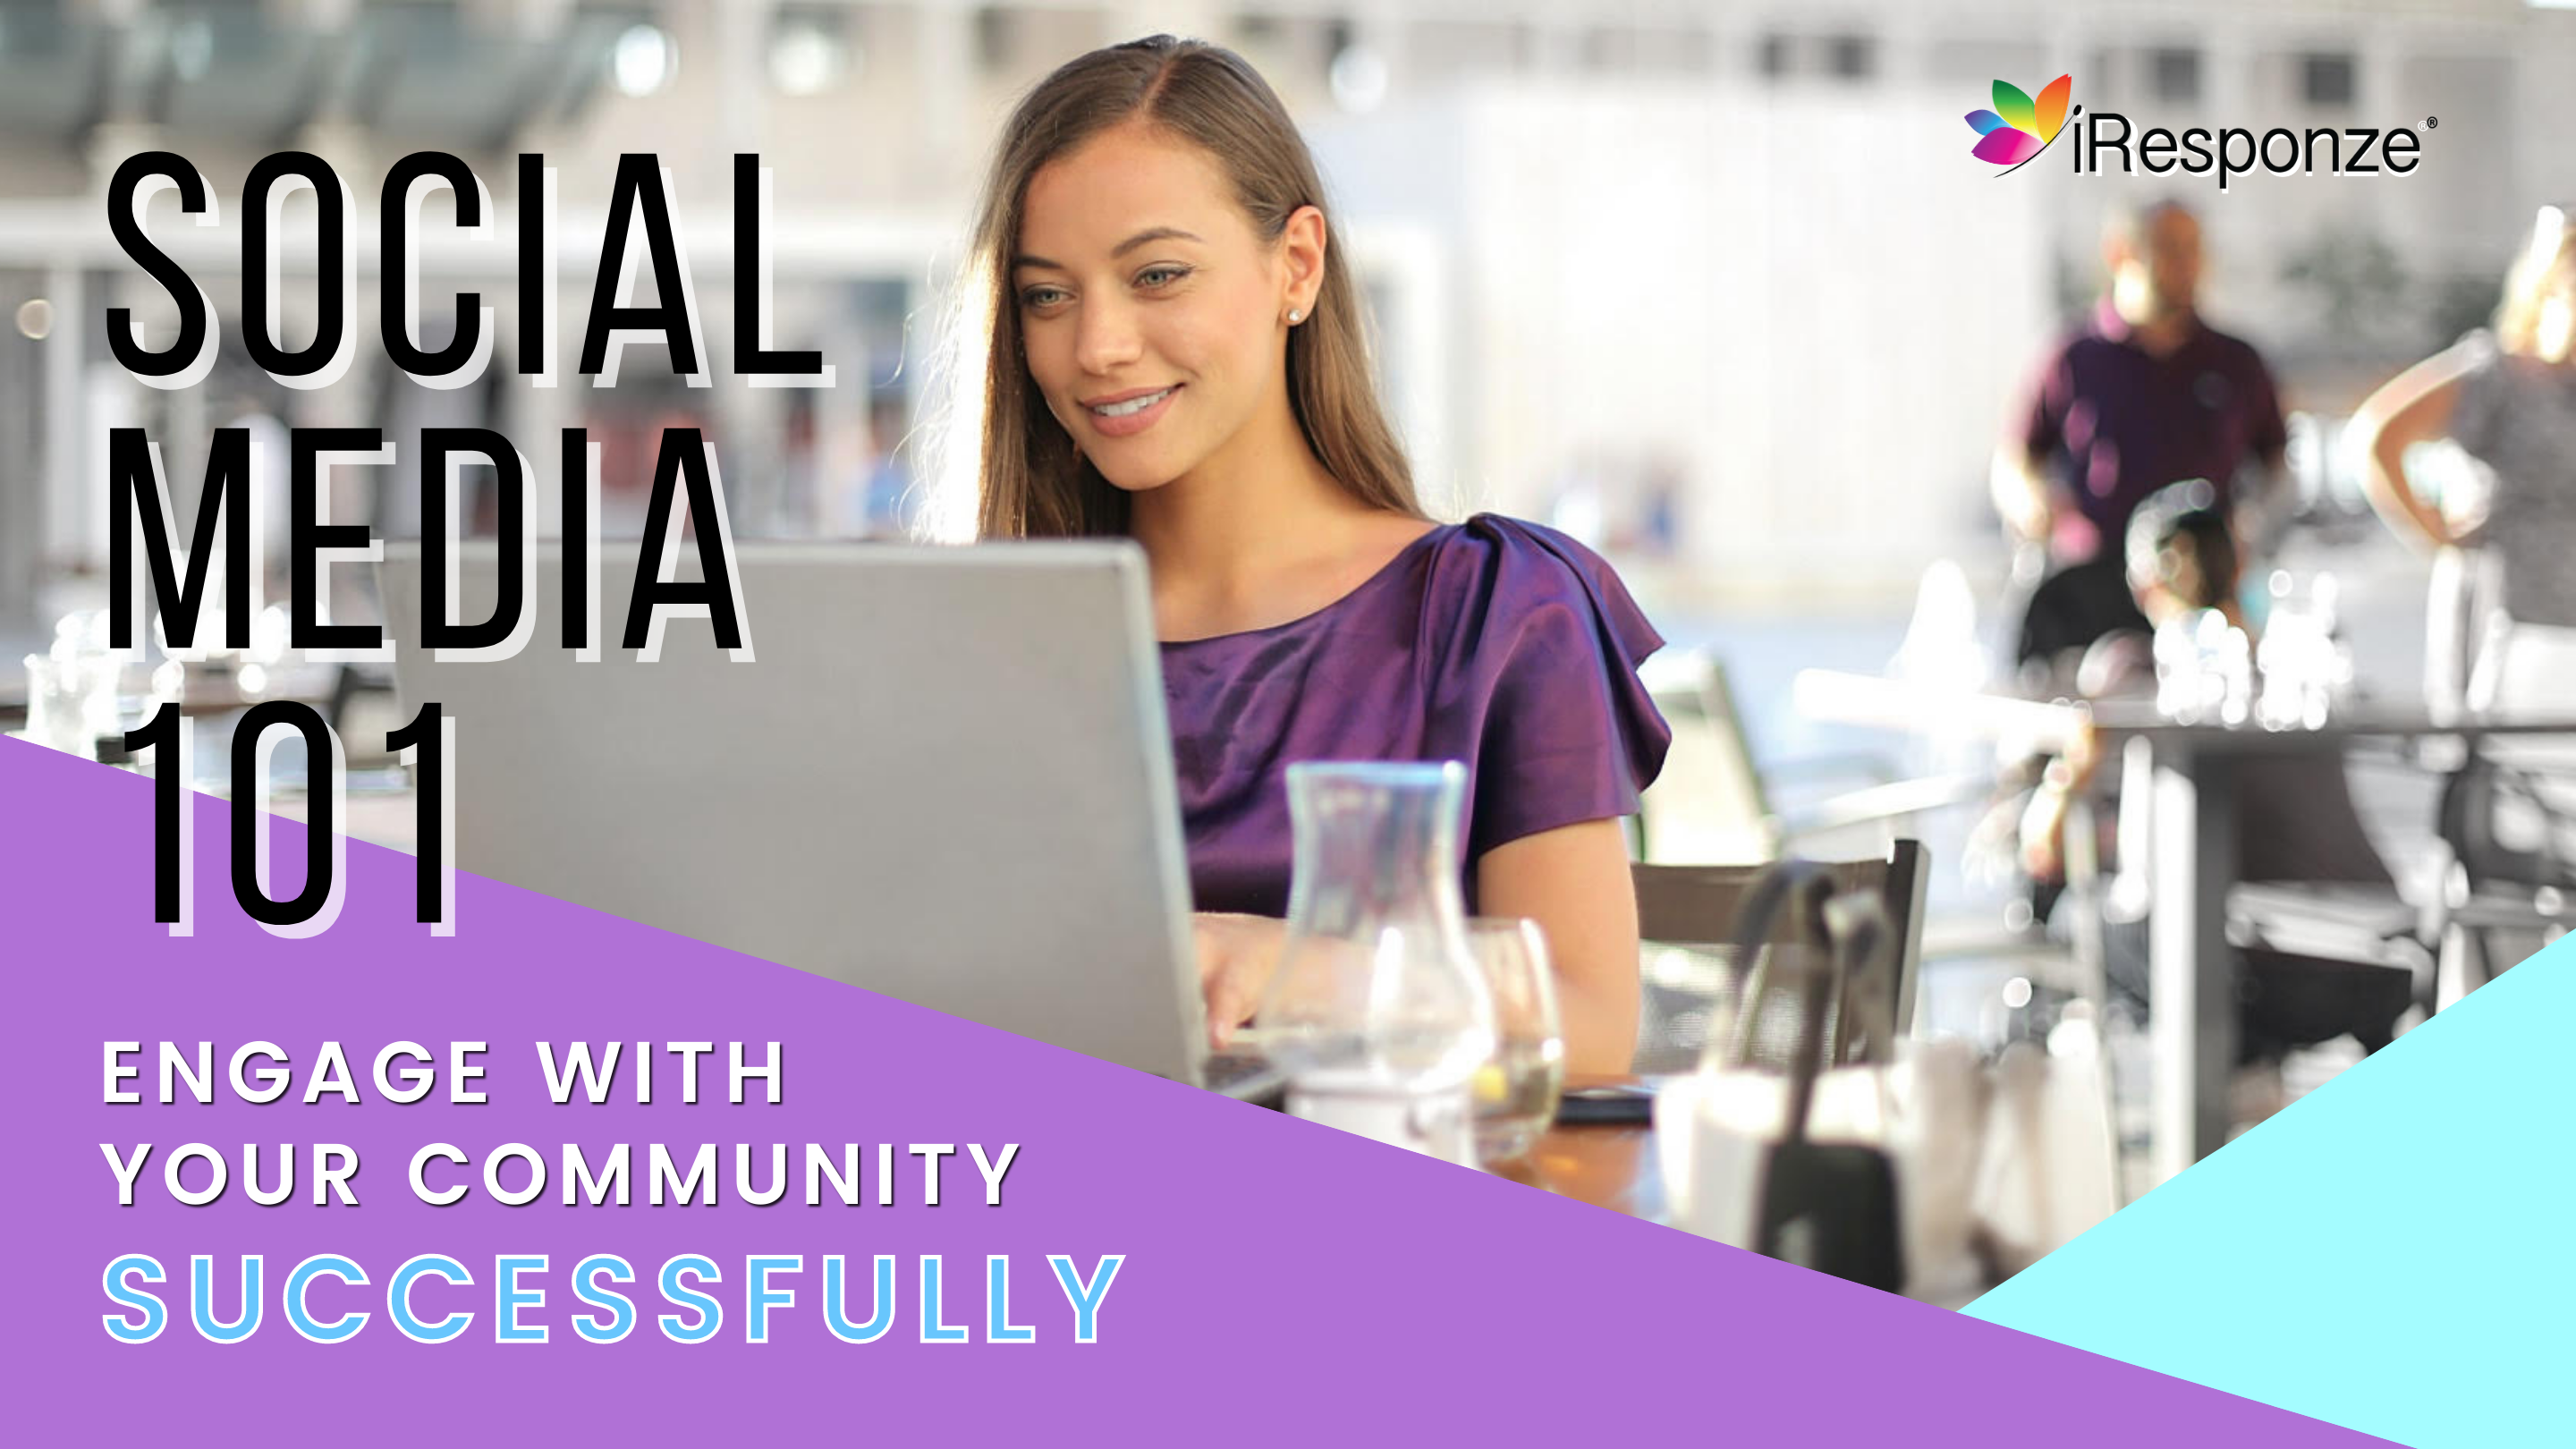 Social Media 101 - Engage with Your Community Successfully